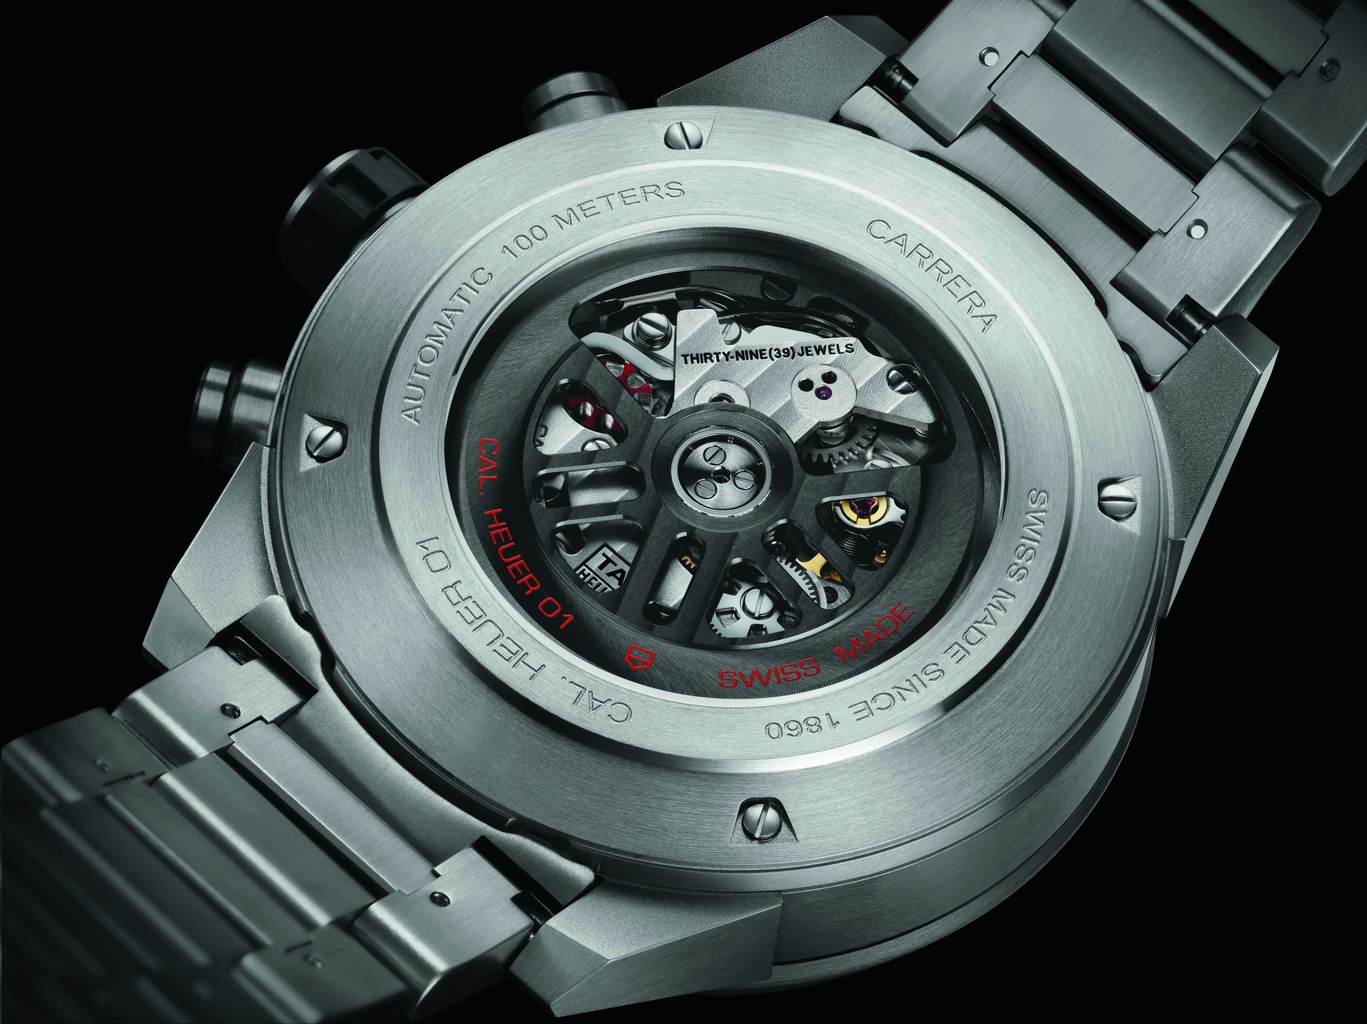 ZCAR2A8A.BF0707 TH CARRERA CAL. HEUER01 GREY PHANTOM TITANIUM - MOOD PACKSHOT CASEBACK 2016